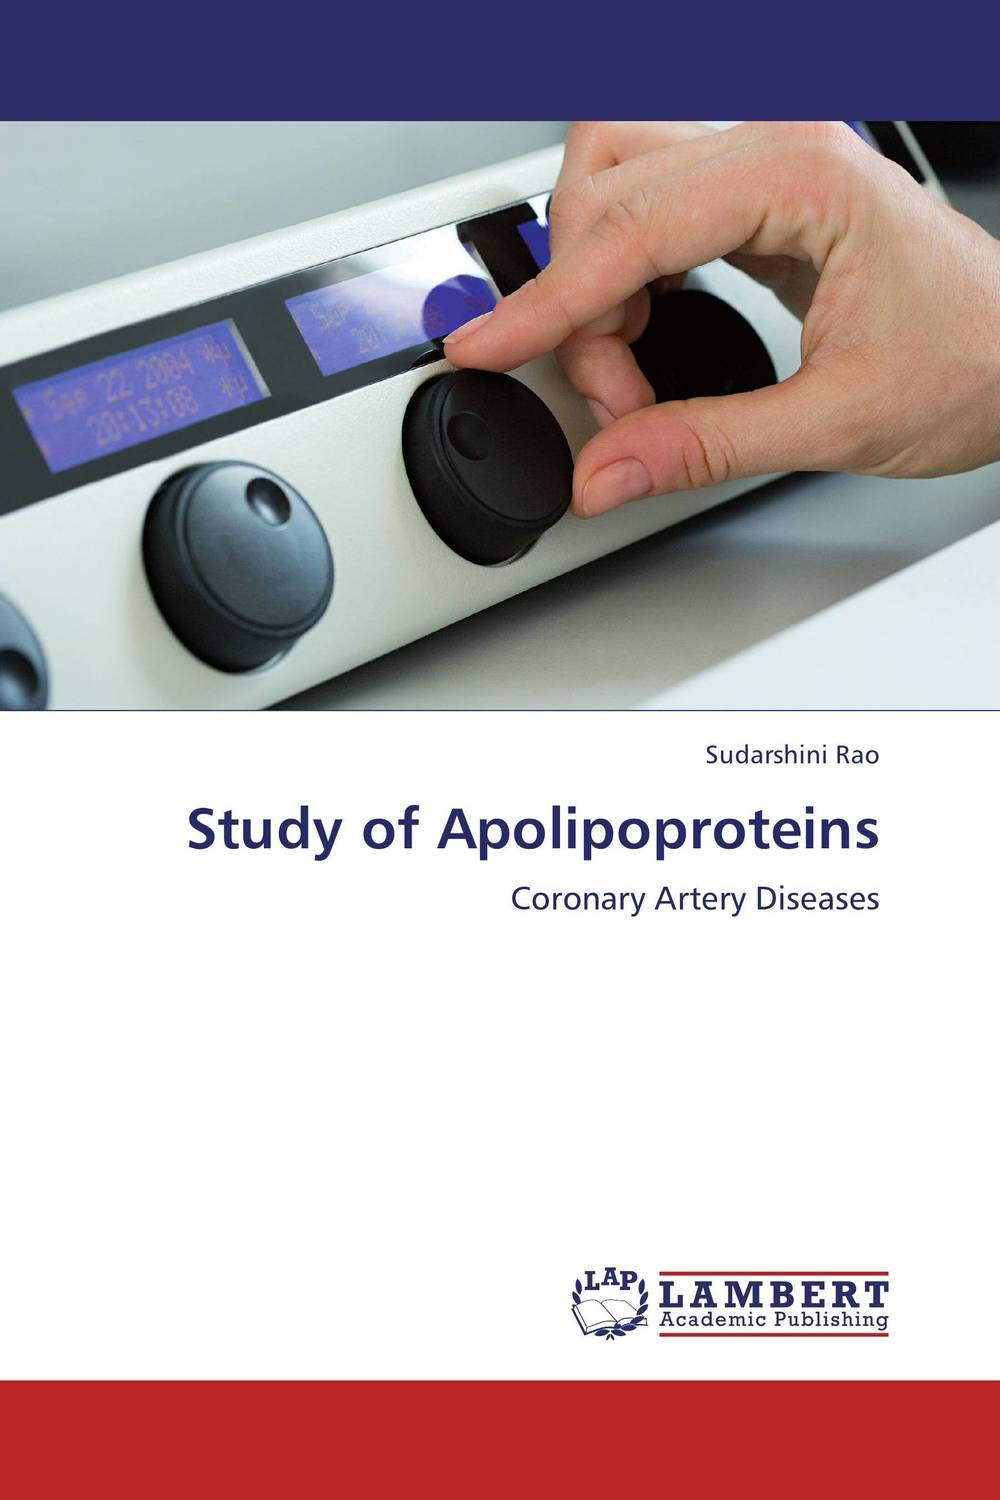 Study of Apolipoproteins